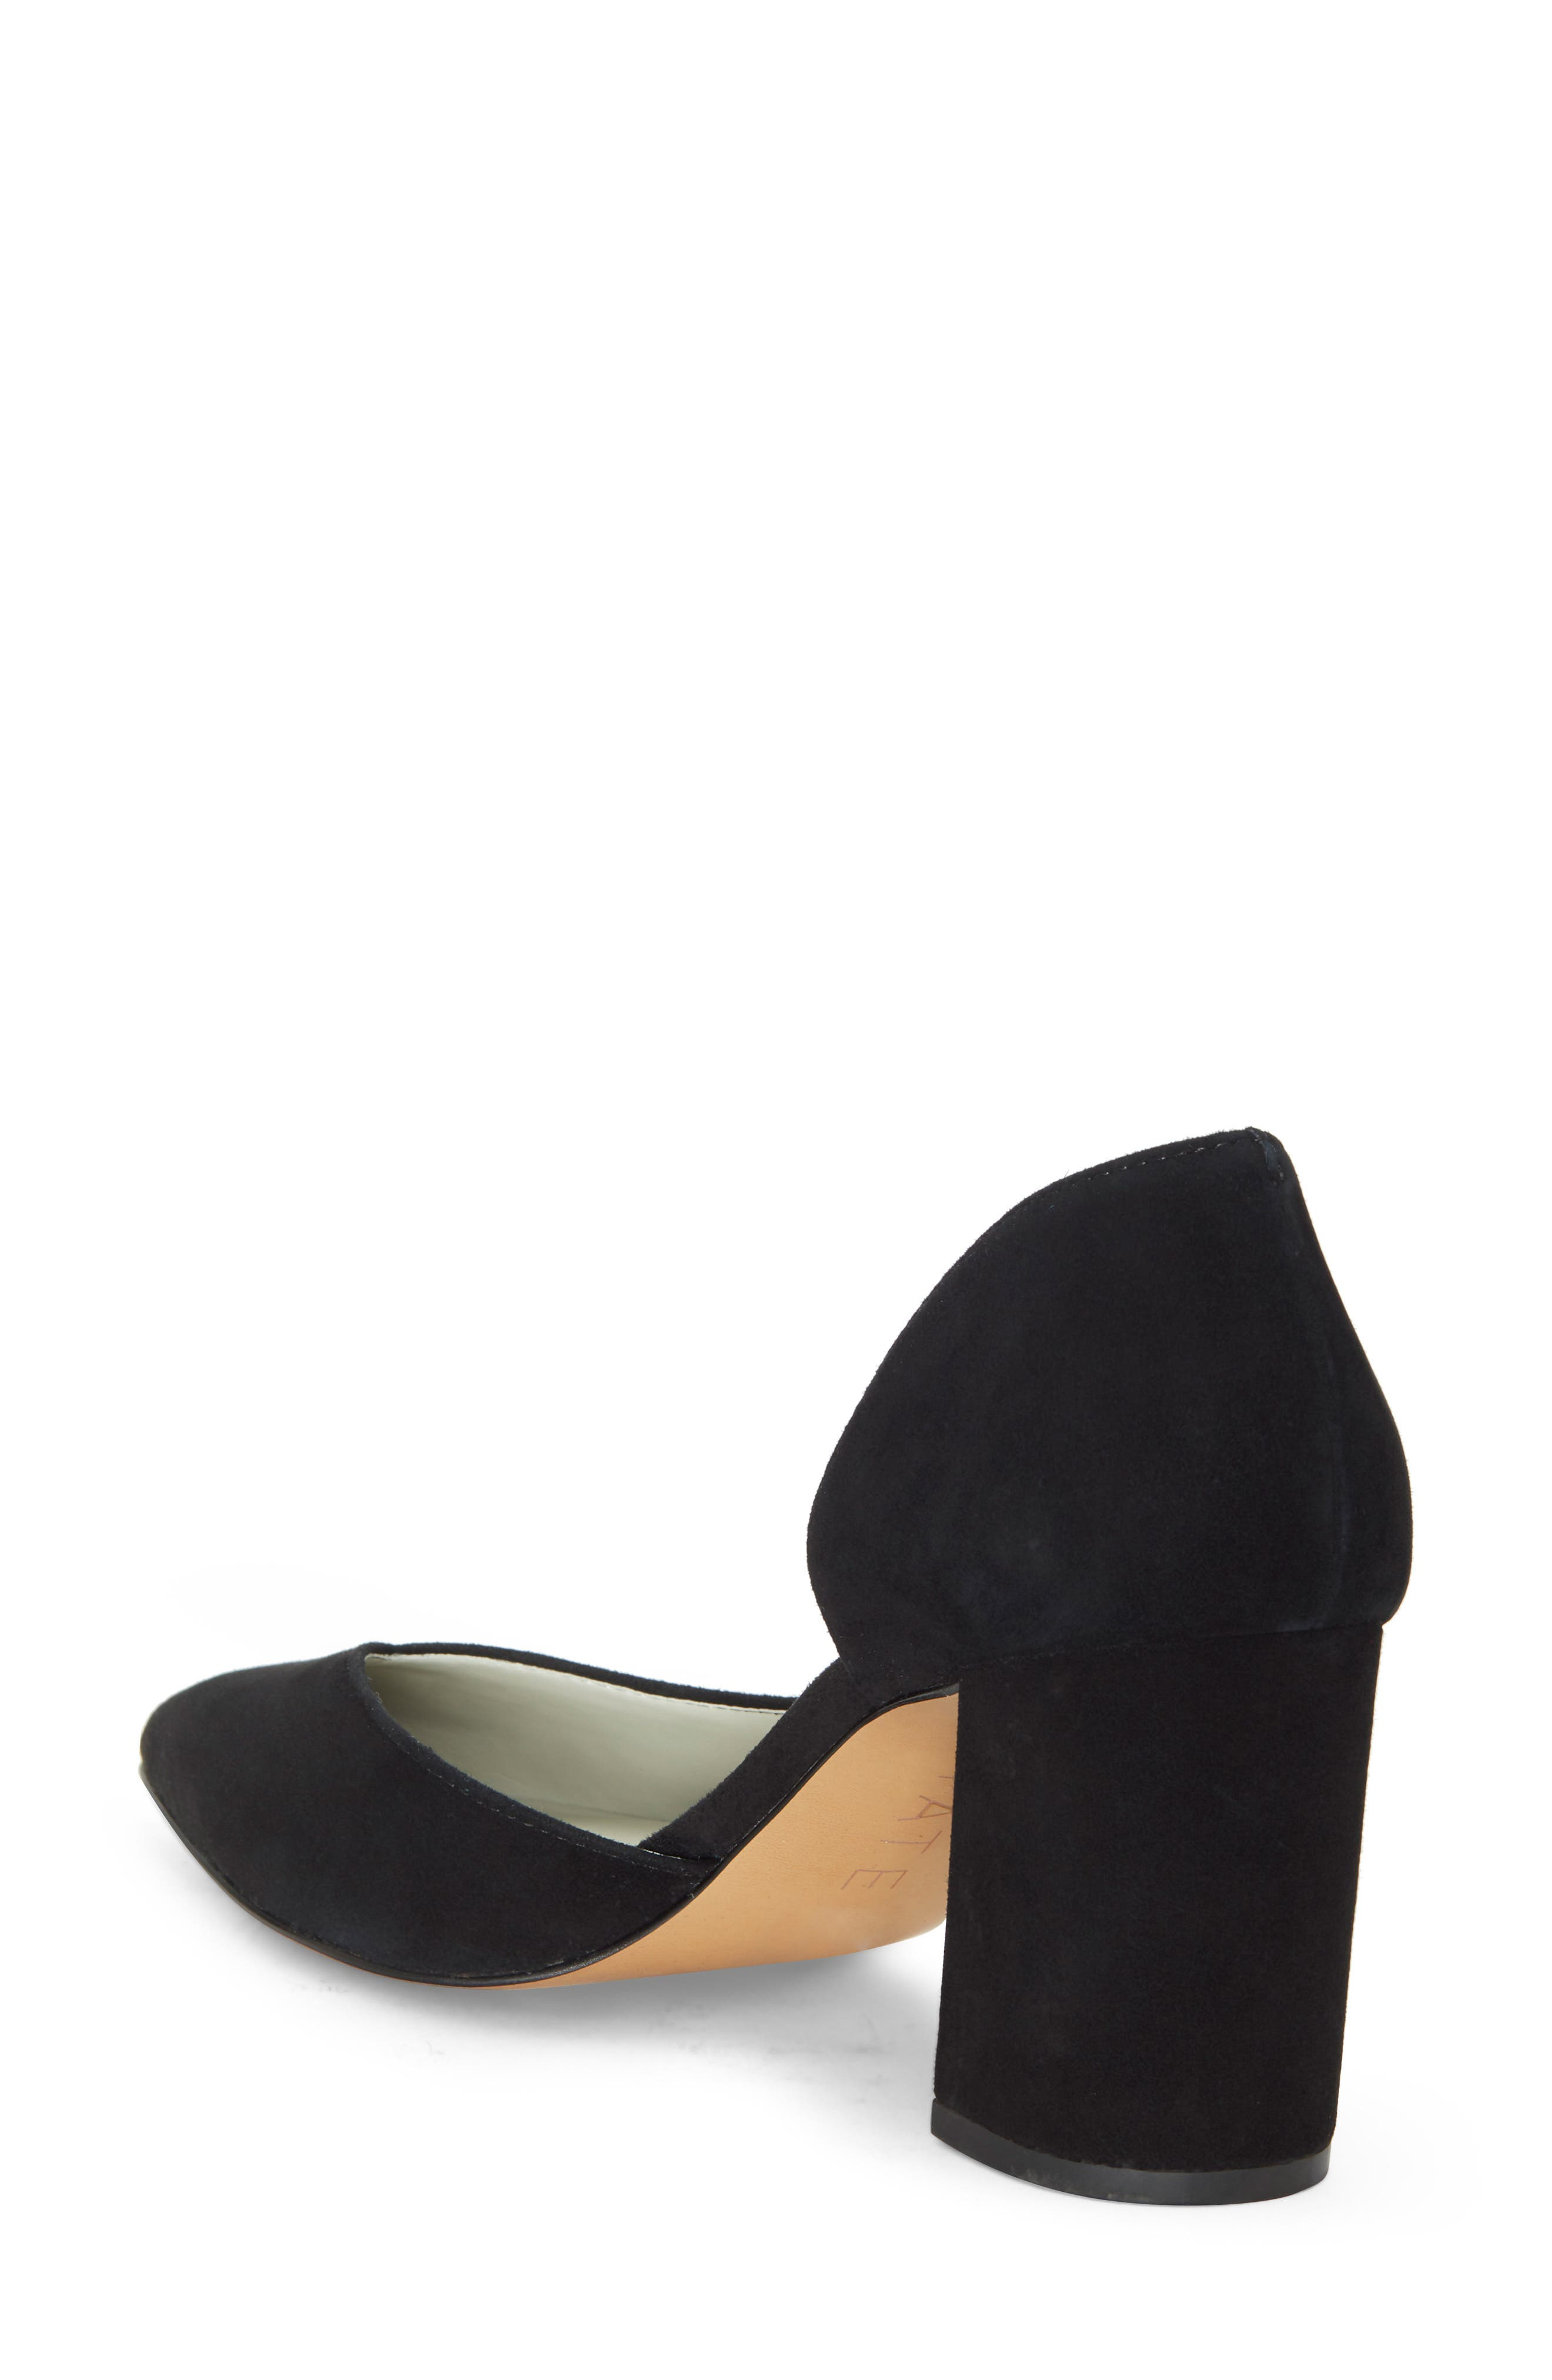 Sisteen Half d'Orsay Pump,                             Alternate thumbnail 2, color,                             BLACK SUEDE